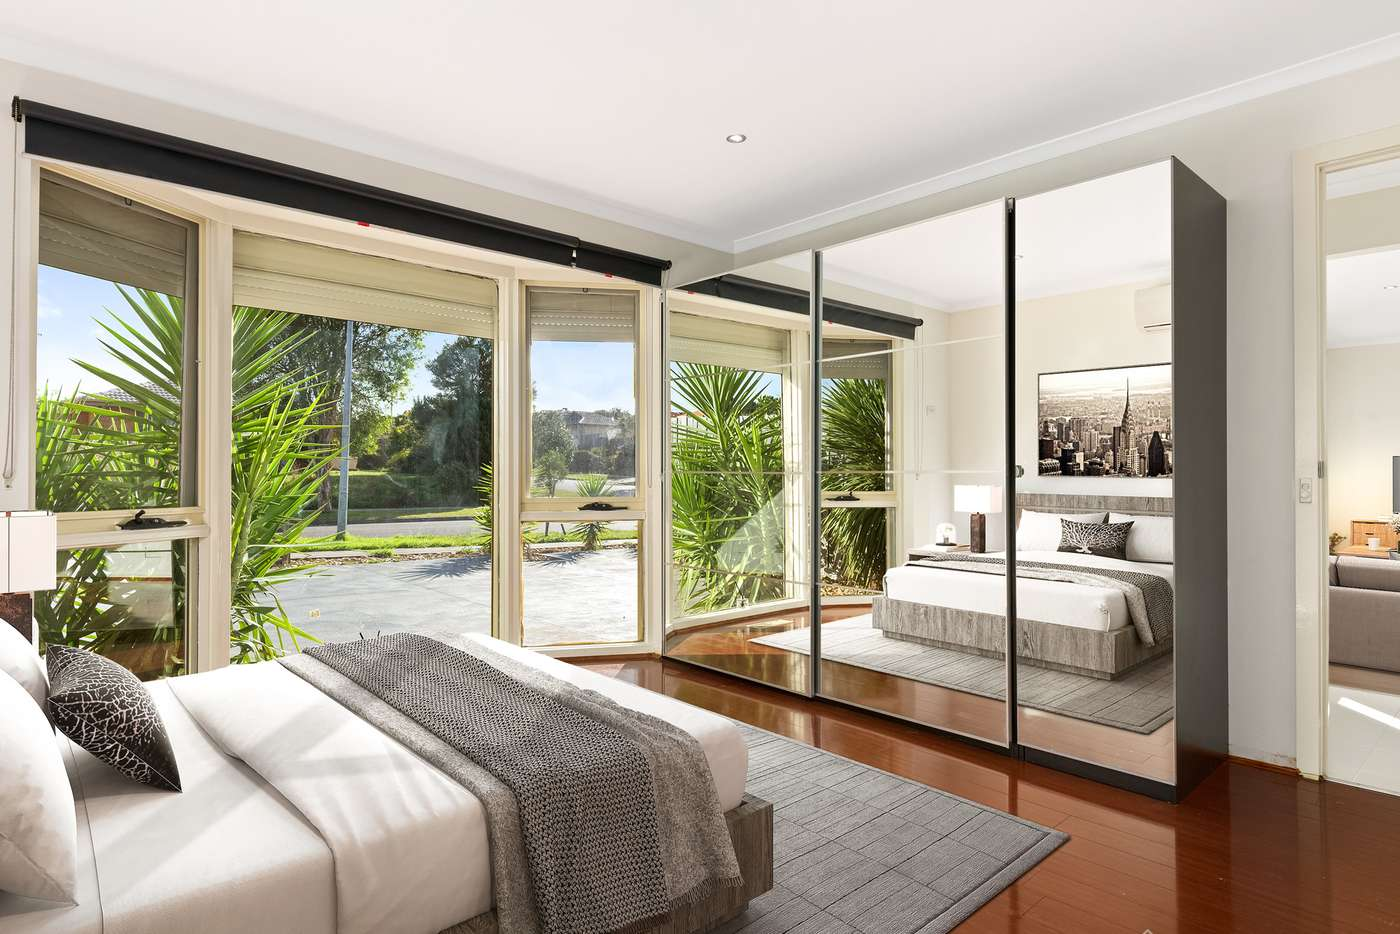 Sixth view of Homely house listing, 2 Weeden Crescent, Hallam VIC 3803